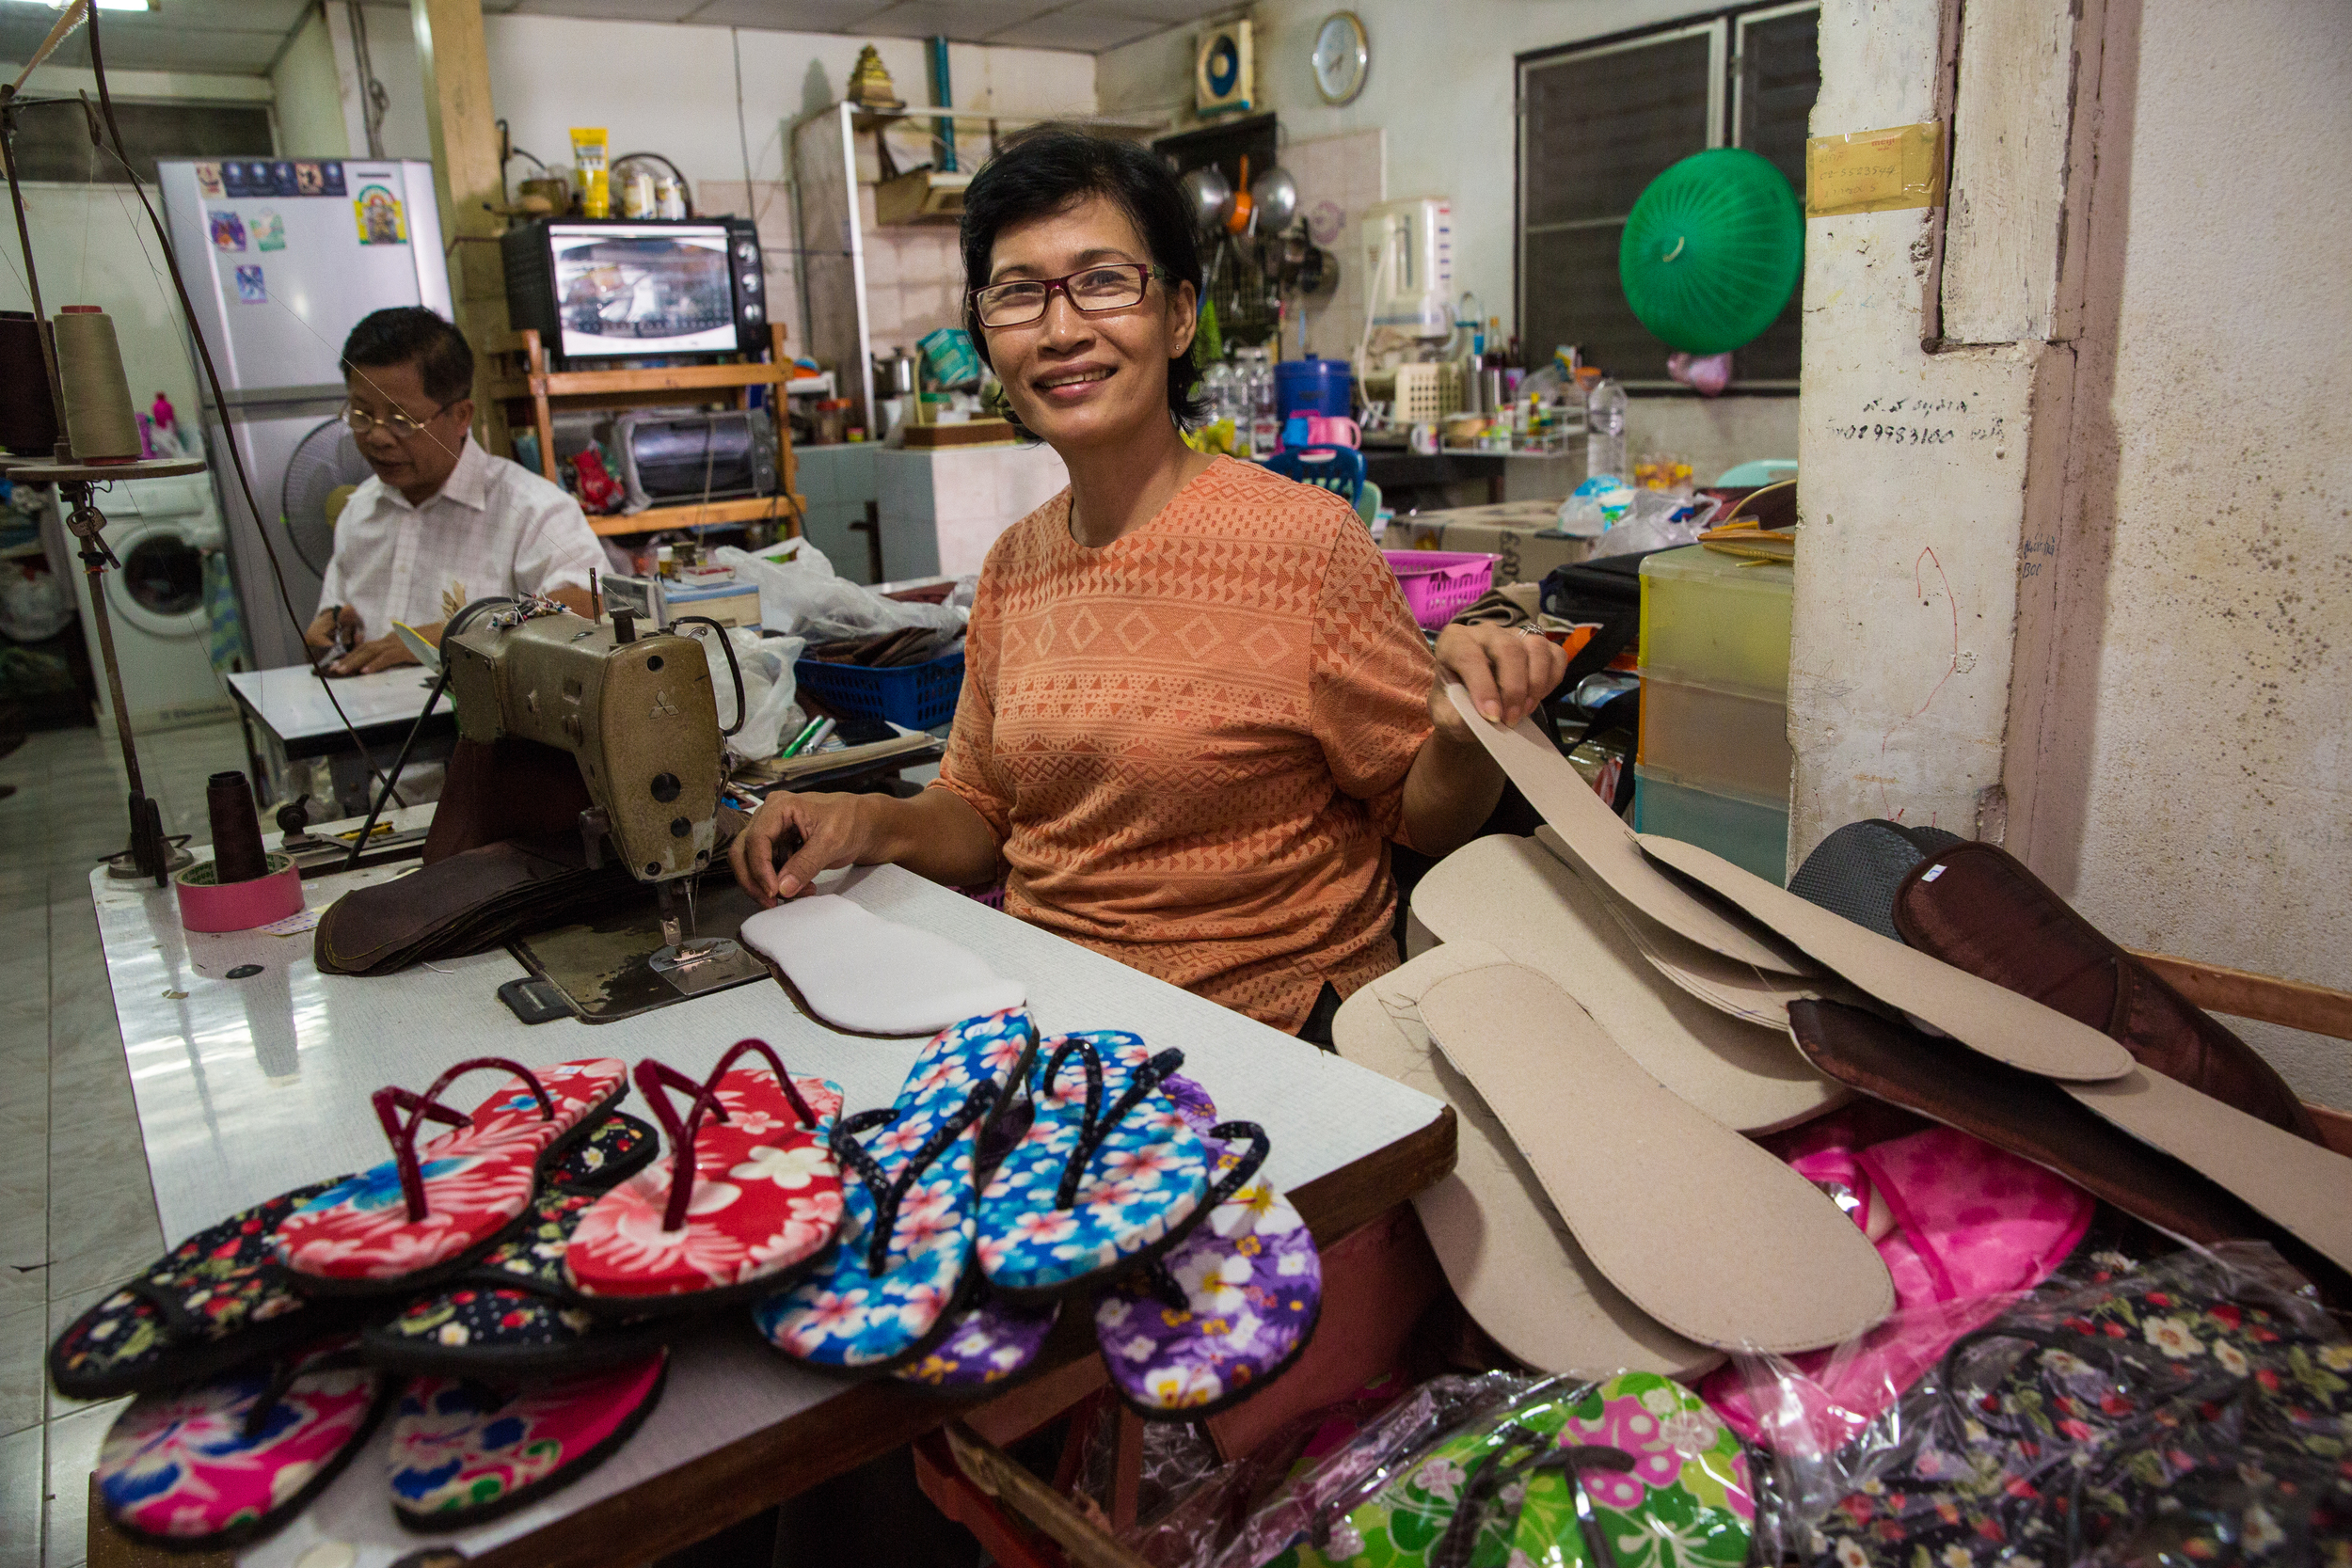 <p>Rattana Chalermchai works with her husband, Mongkol, at home. A former factory worker, Rattana was laid off during the economic crisis in 1997. She now supplies hand-made flip-flops to a resort. She and her husband are long-time members of HomeNet Thailand, and have contributed to several policy campaigns for informal workers, including the Universal Healthcare Coverage. Through HomeNet, they have also helped Thailand's home-based garment workers to officially register themselves as a garment cooperative. As legal entity, the cooperative has broadened opportunities to get work orders, and more importantly, strengthen a movement of home-based workers. (Photo by Paula Bronstein/Getty Images Reportage).</p>